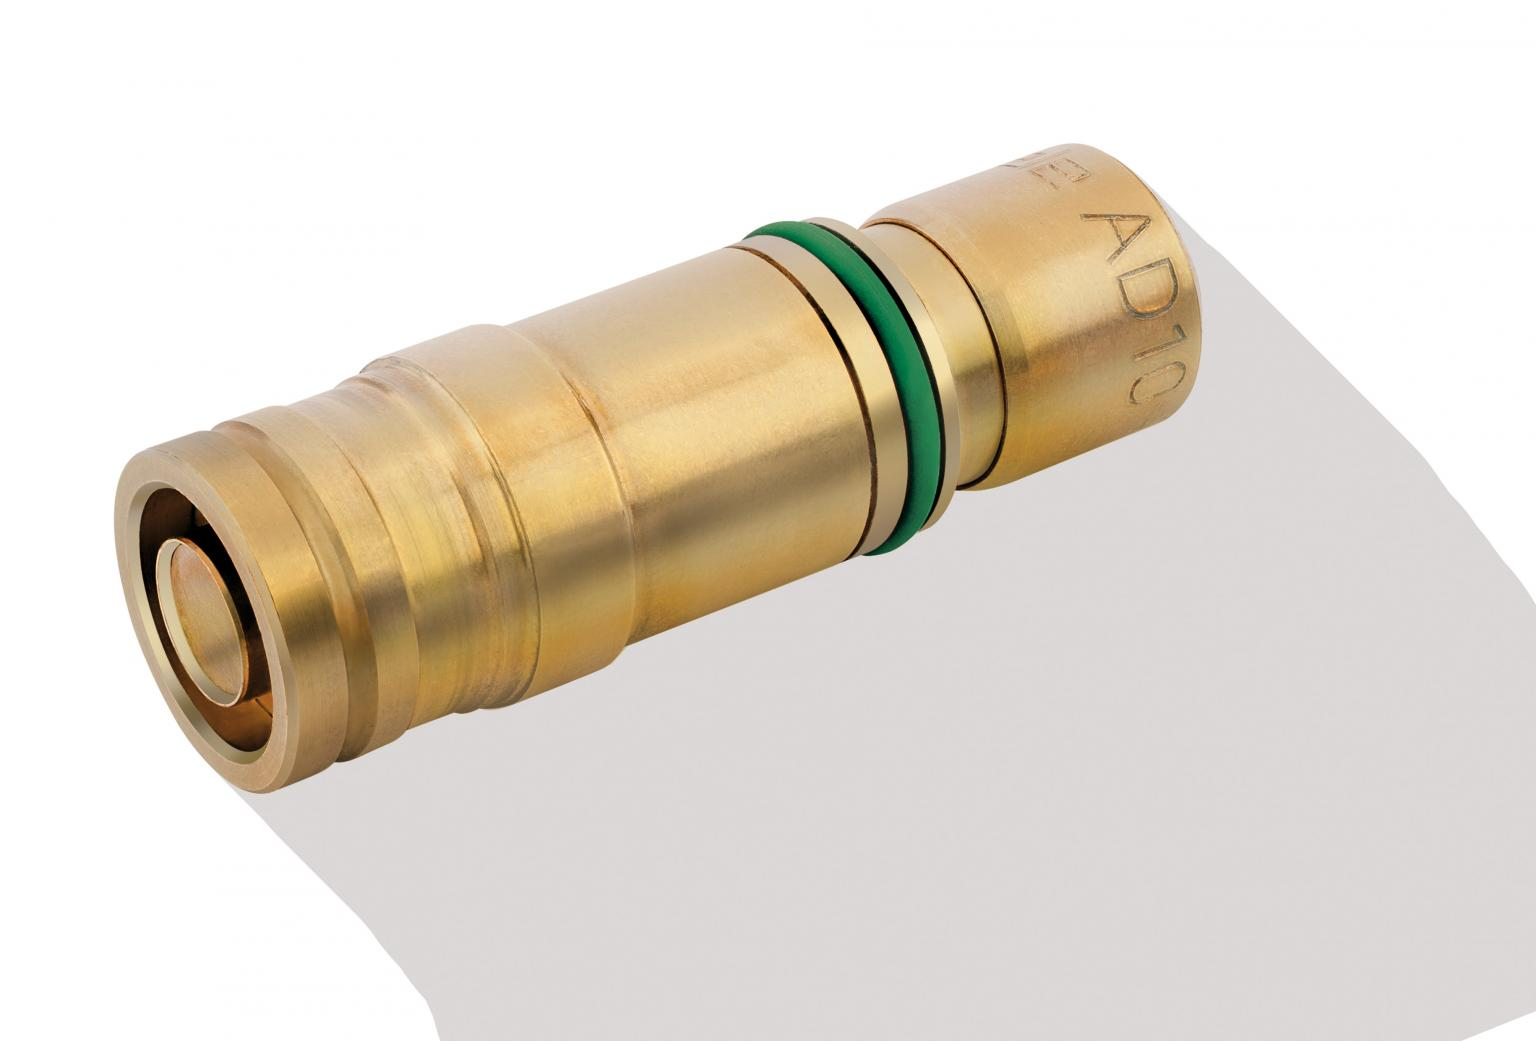 The connection inserts are manufactured from brass or stainless steel and are available in different diameters and connection types